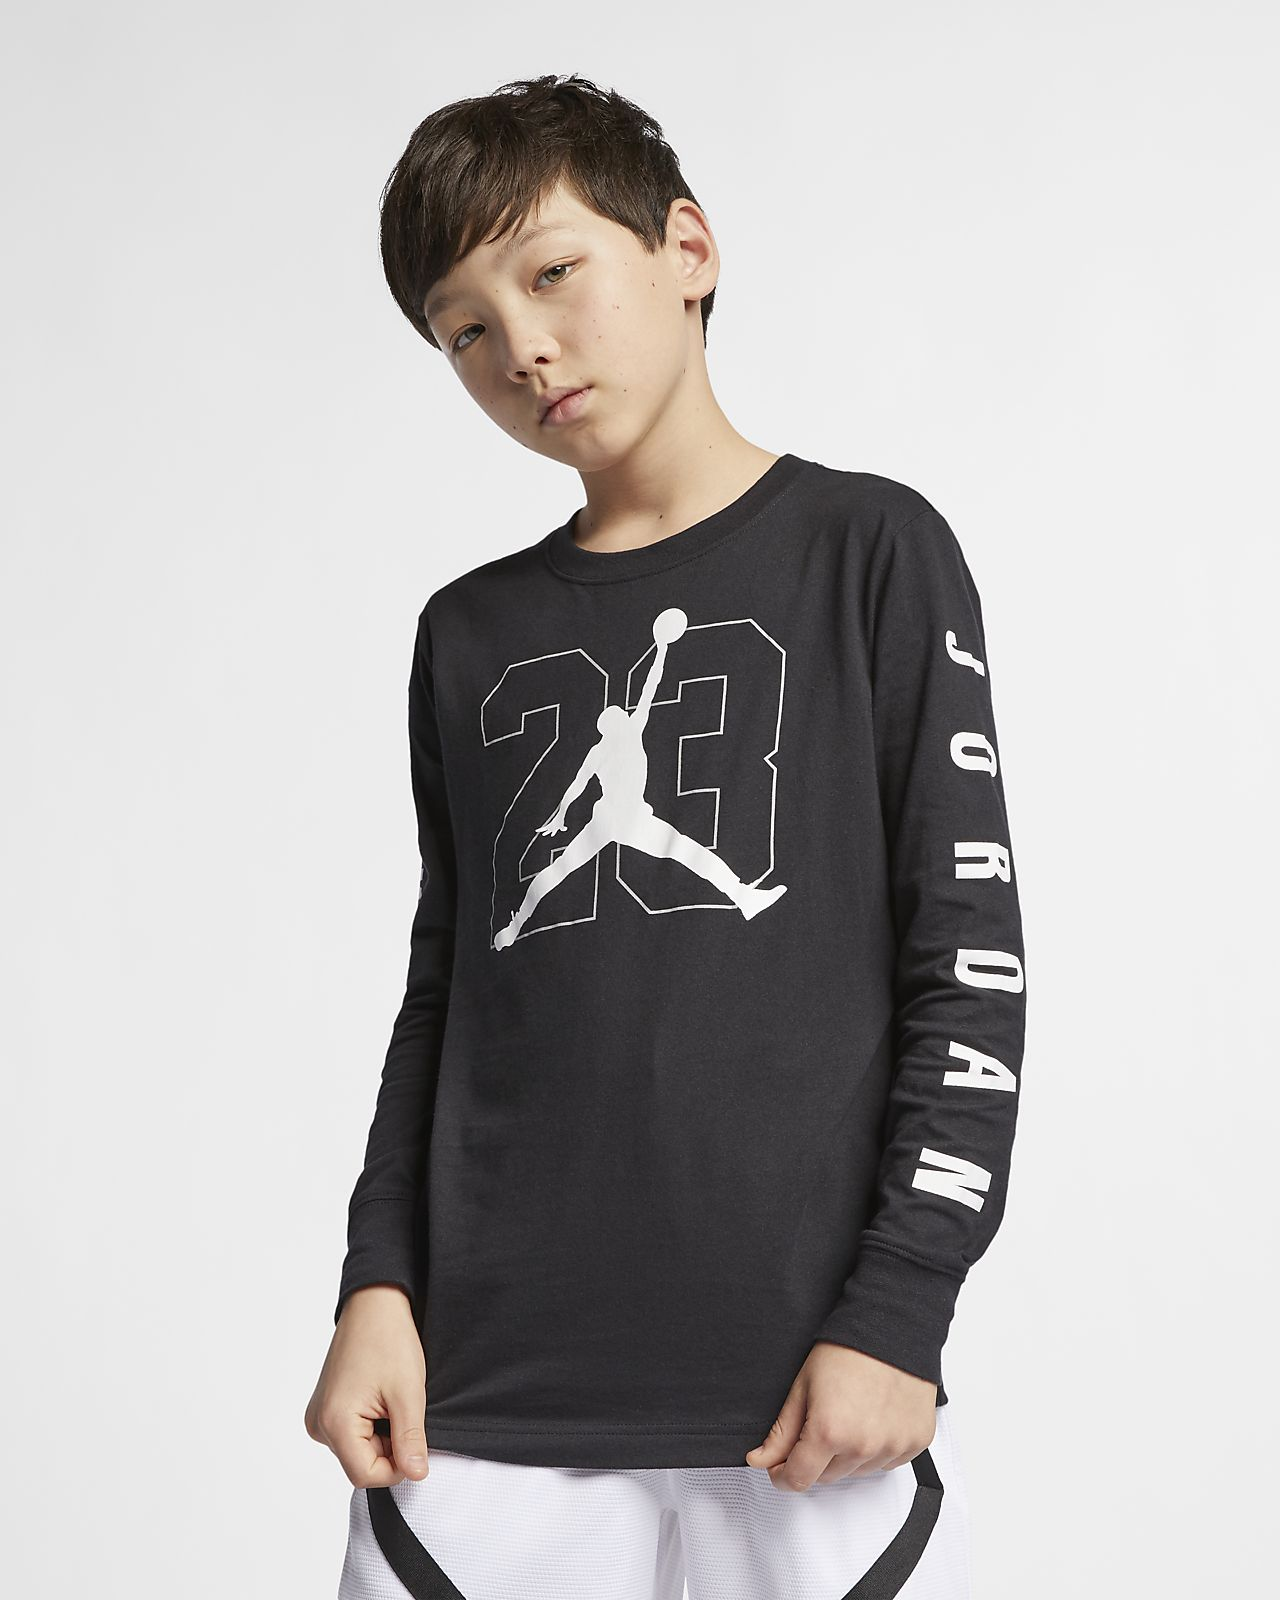 Jordan Jumpman 23 Older Kids' (Boys') Long-Sleeve Graphic T-Shirt